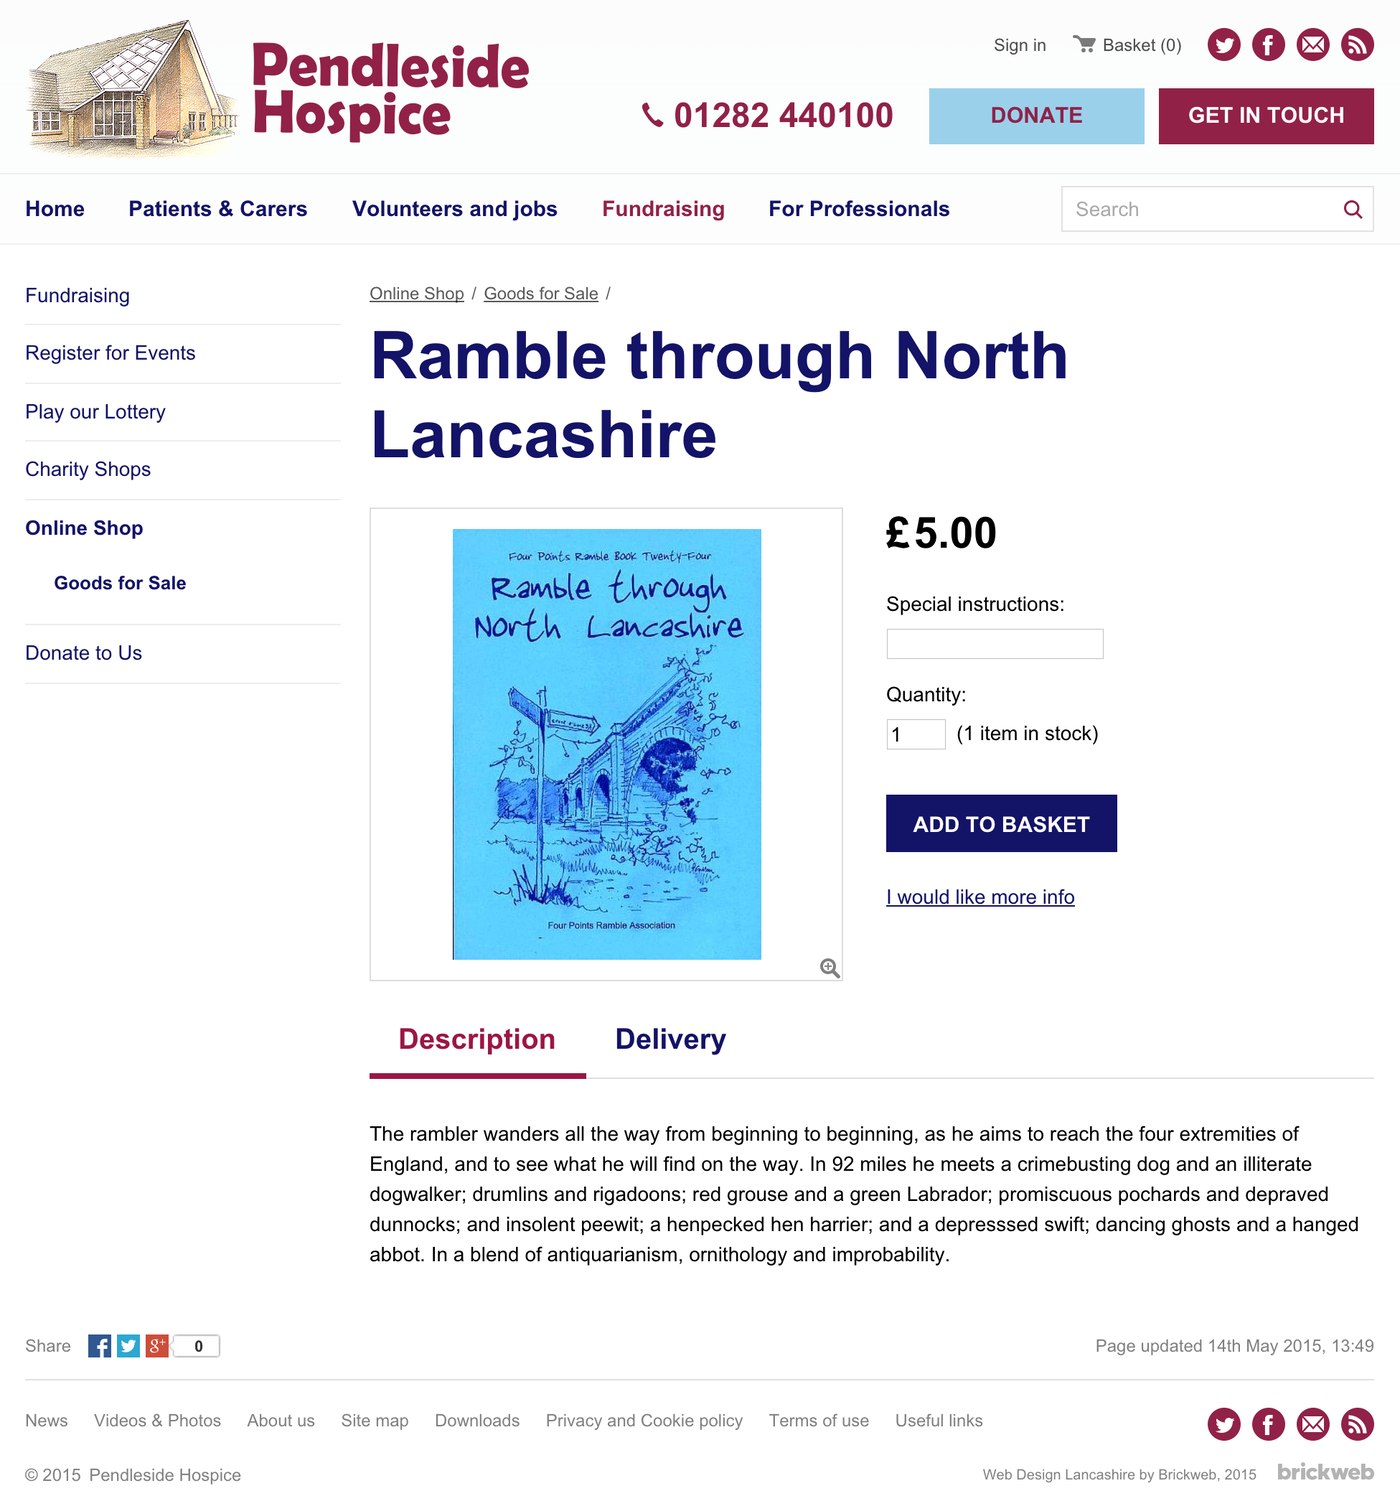 Pendleside Hospice Product